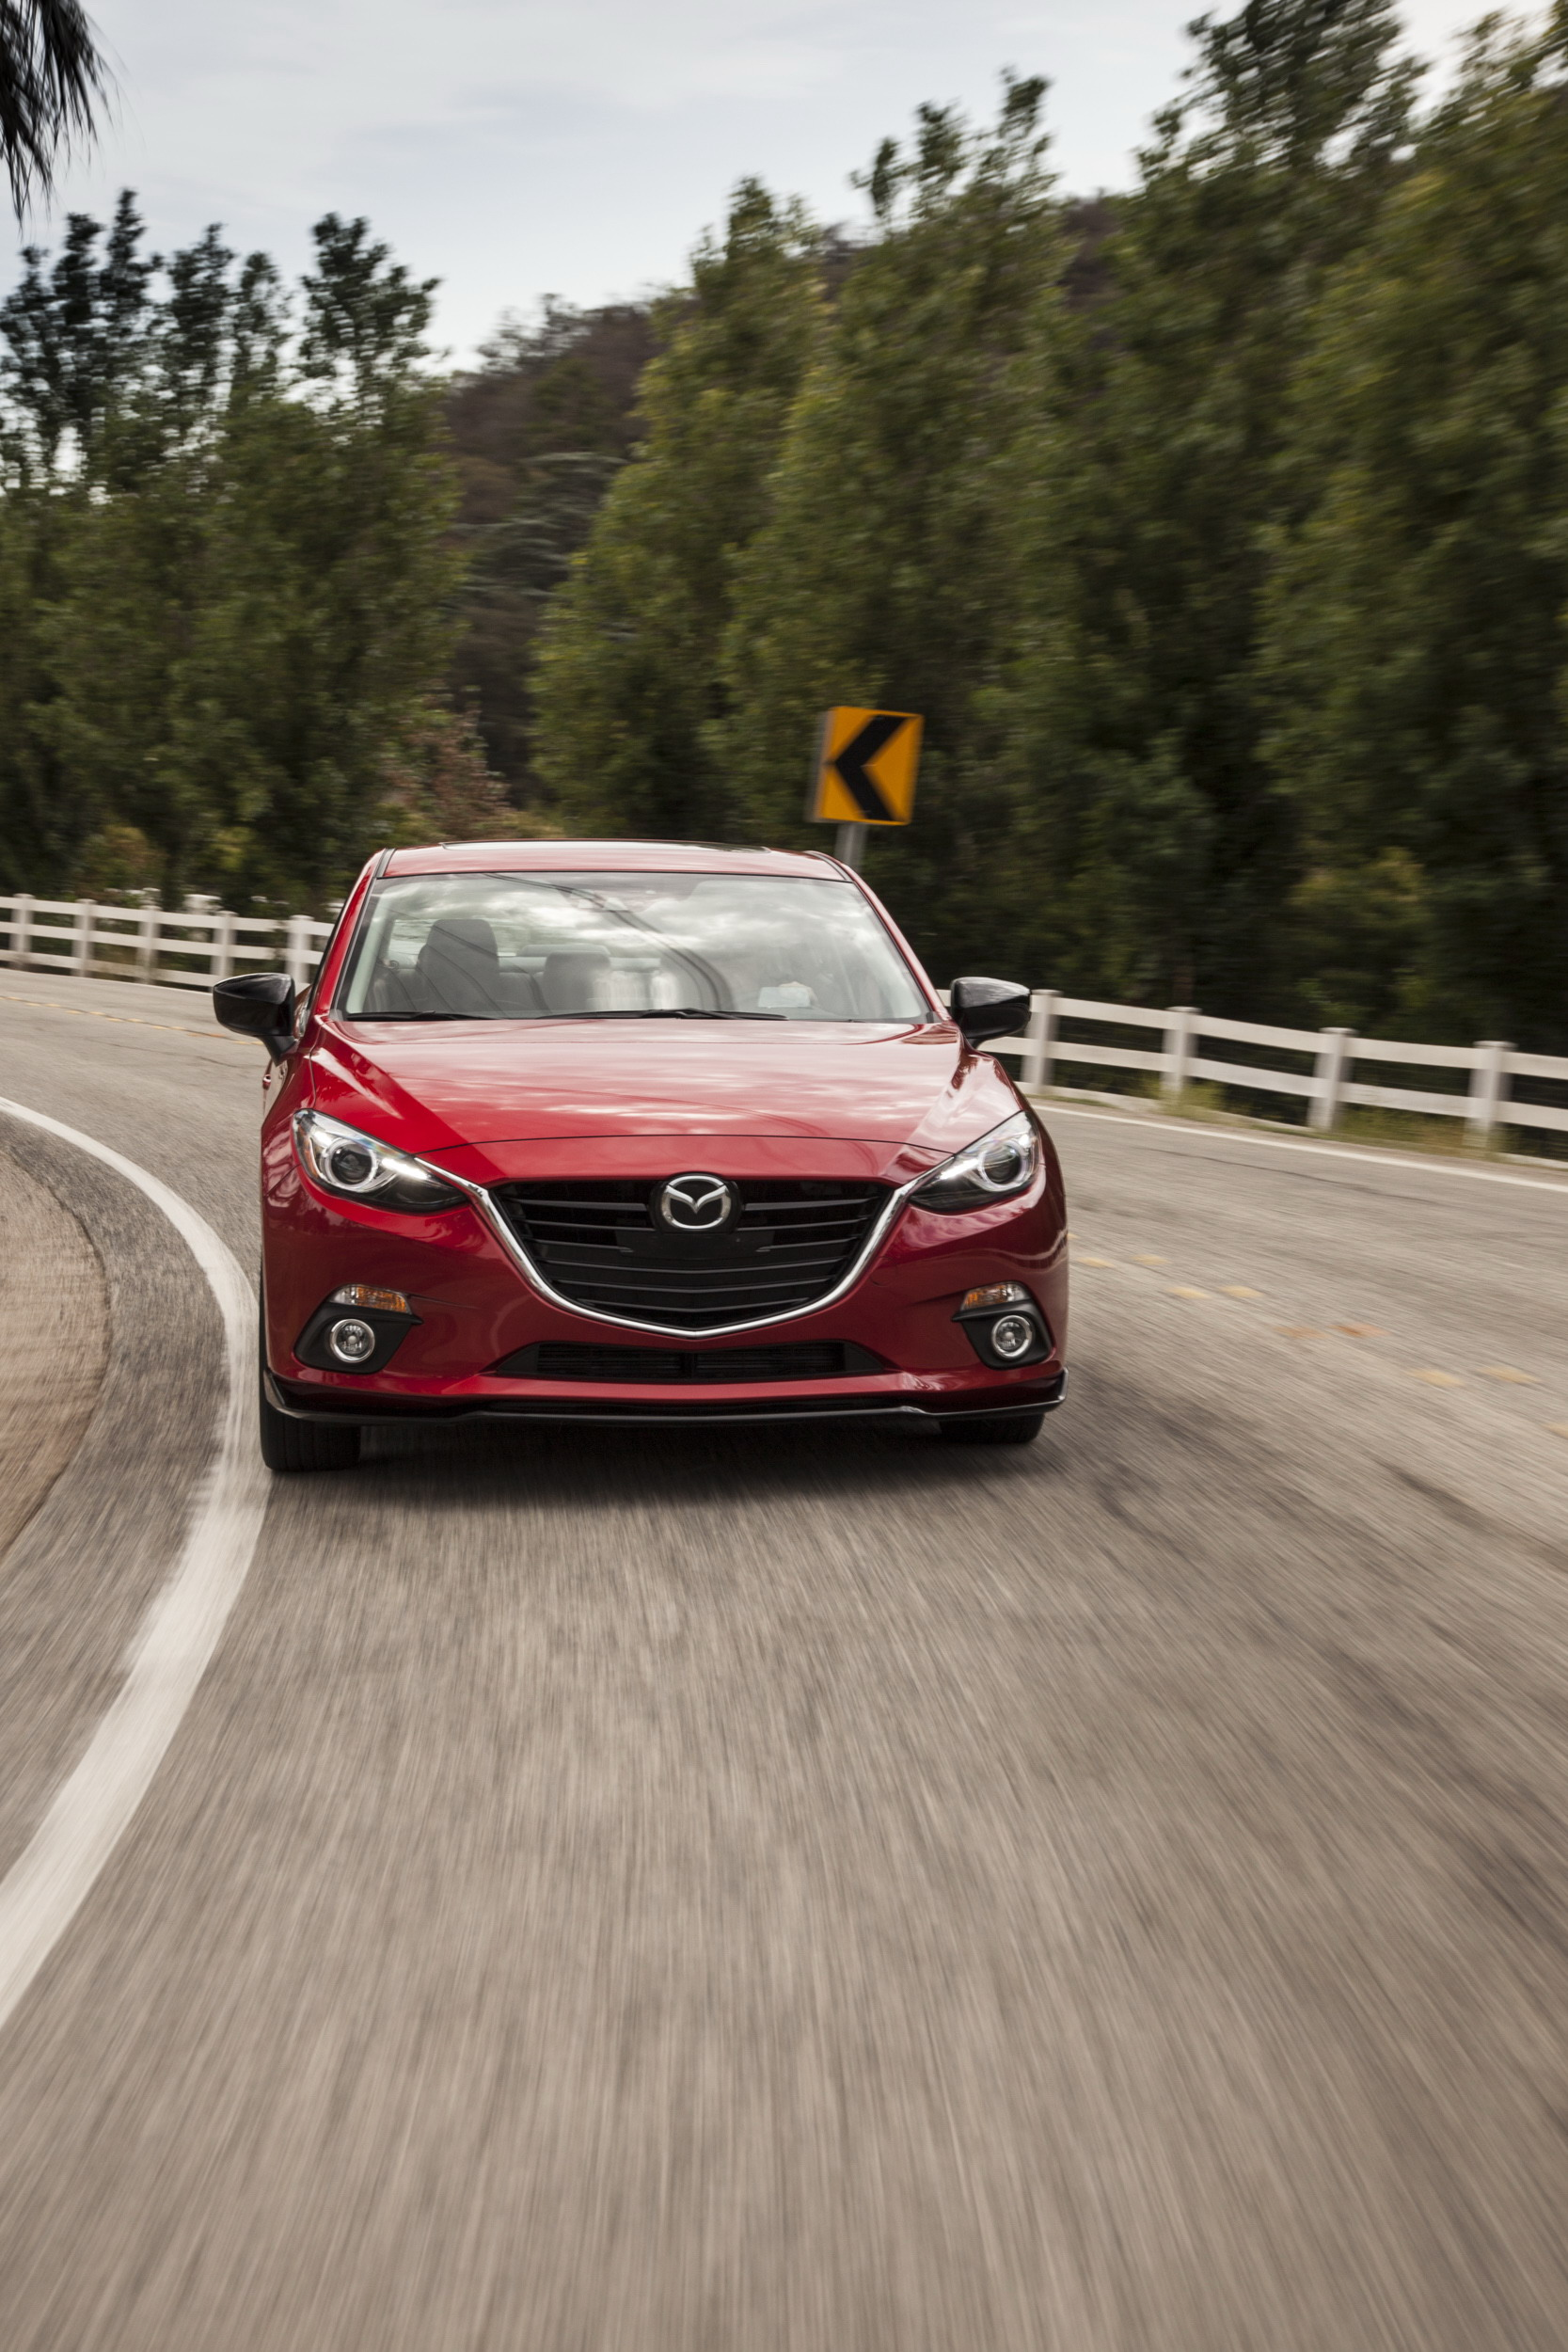 Mazda 3 Owners Manual: Cleaning the Upholstery andInterior Trim